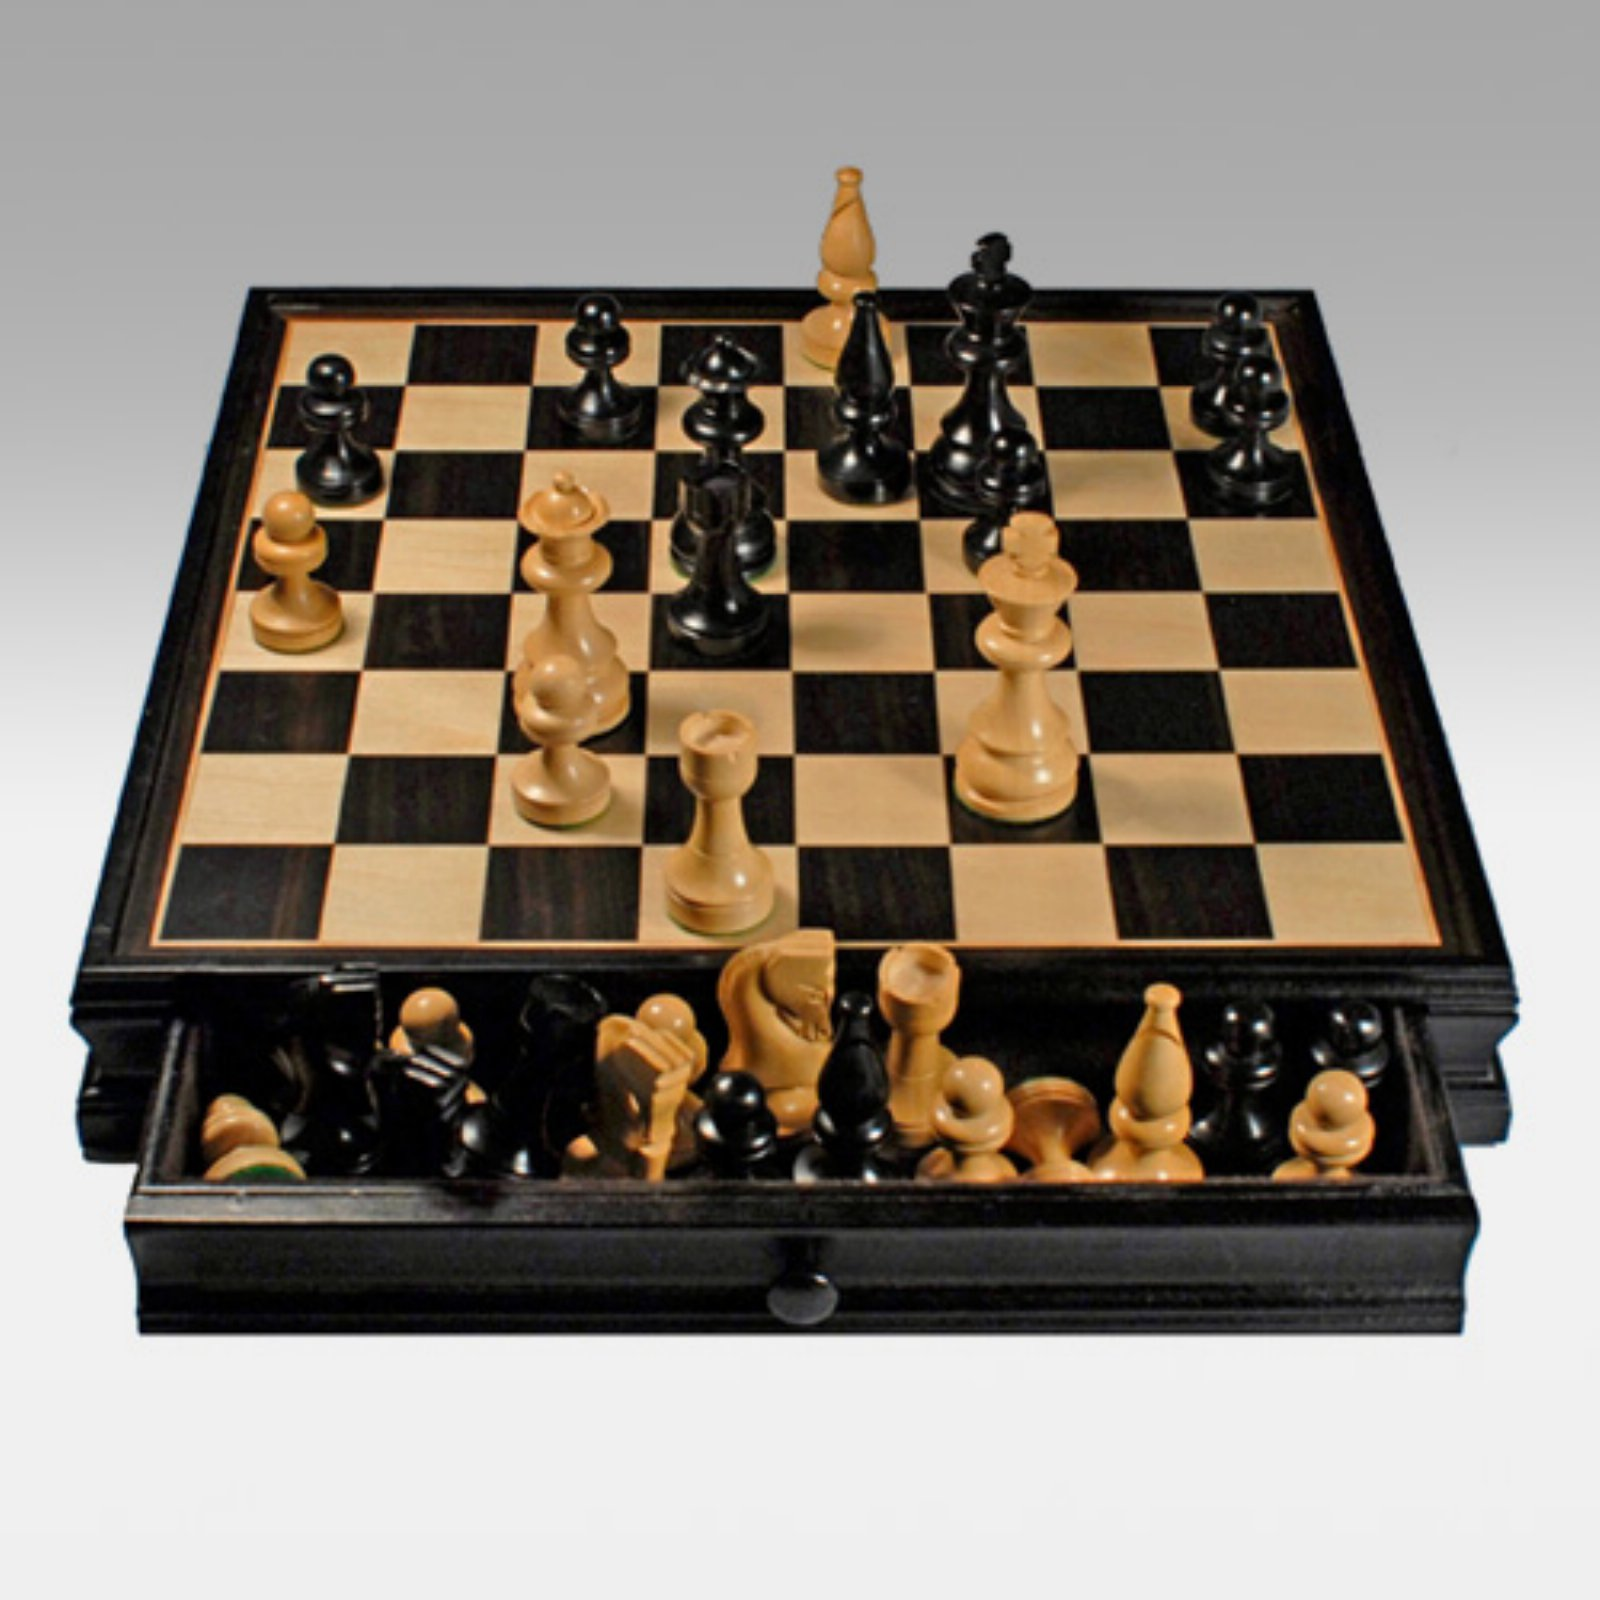 Russian Style Chess and Checkers Game Set, Weighted Chessmen and Black Stained Wood Board with Storage... by Generic